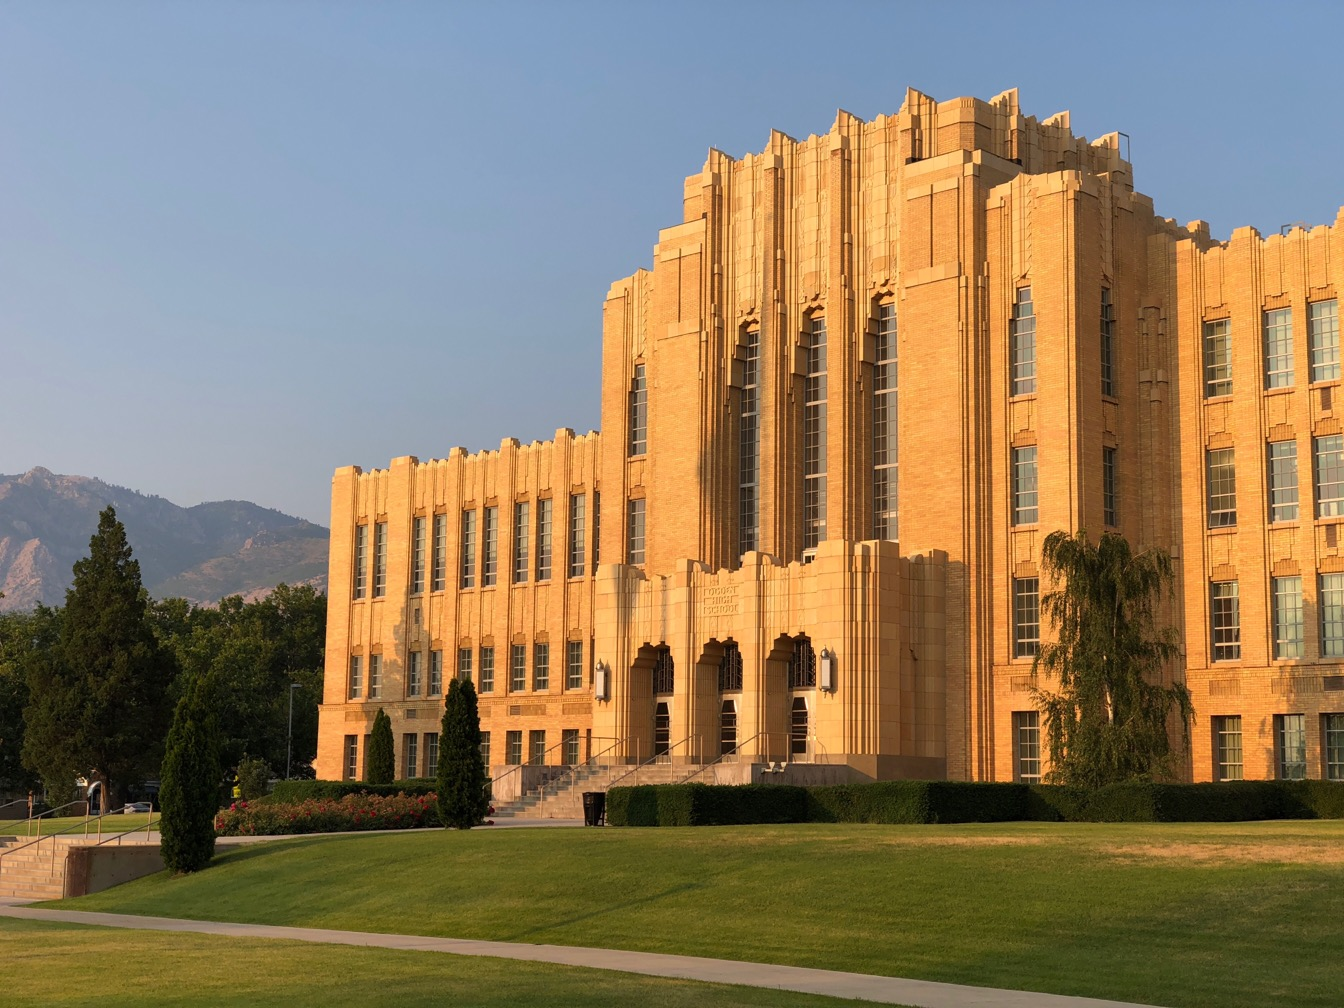 A photo of an art Deco style high school with evening light and mountains behind.